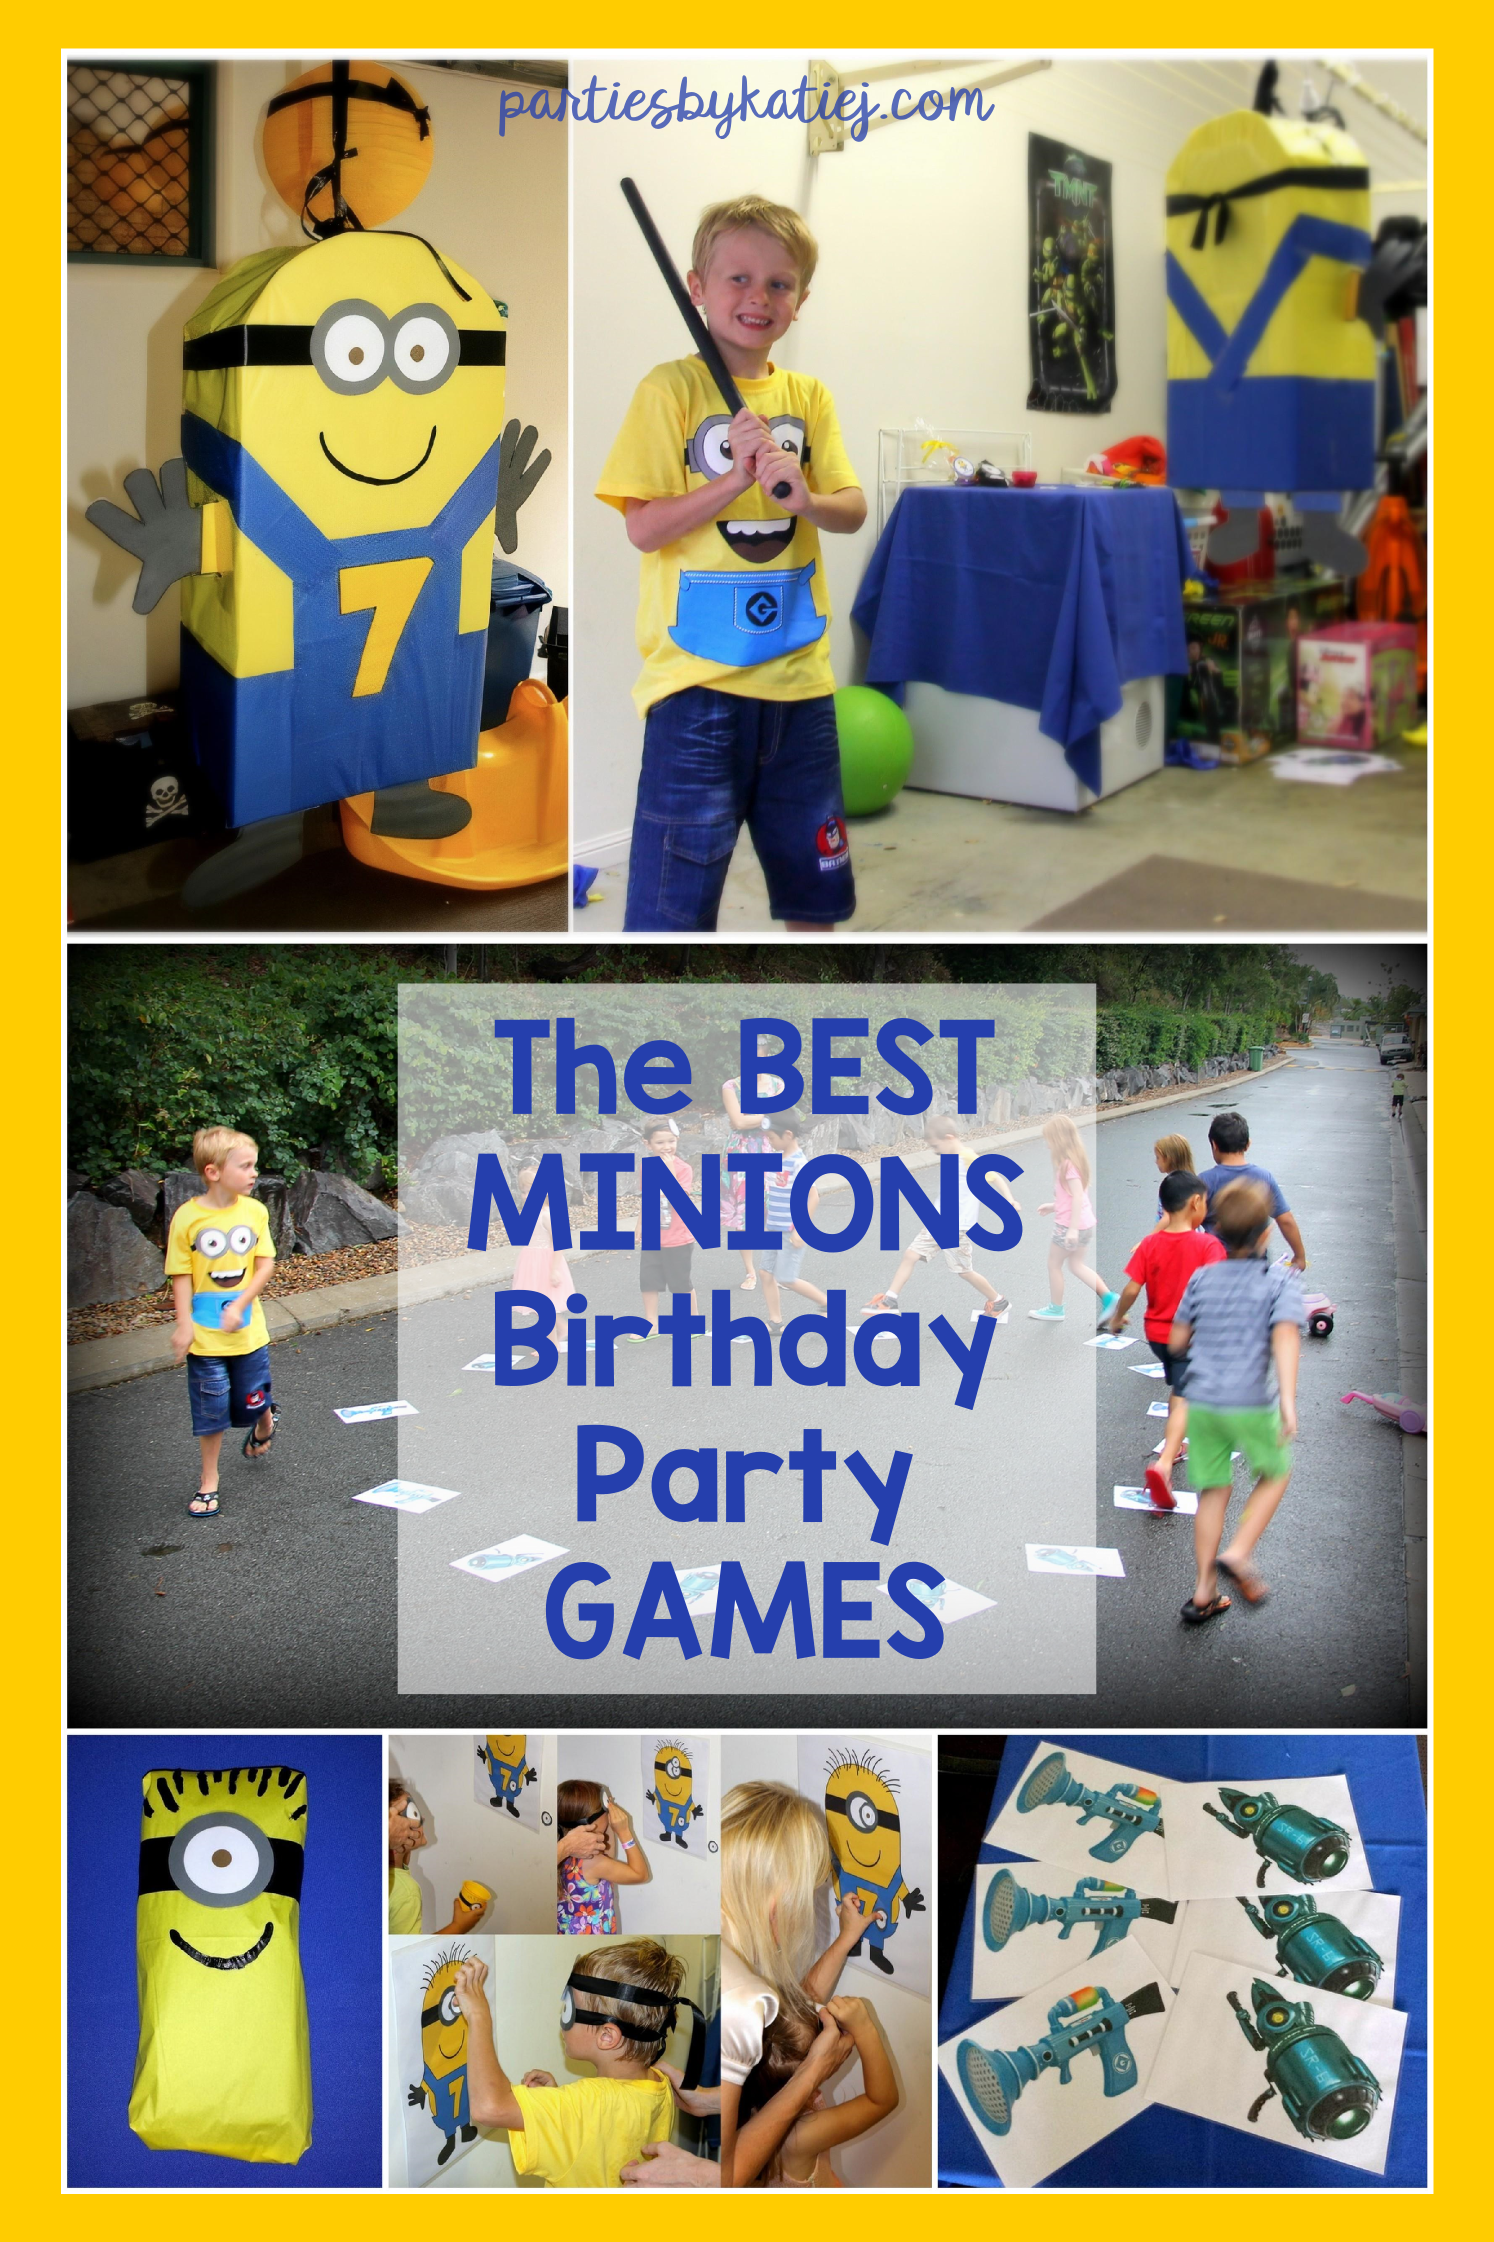 Fun Easy Minions Party Games In 2021 Minion Party Games Minion Birthday Party Minion Party